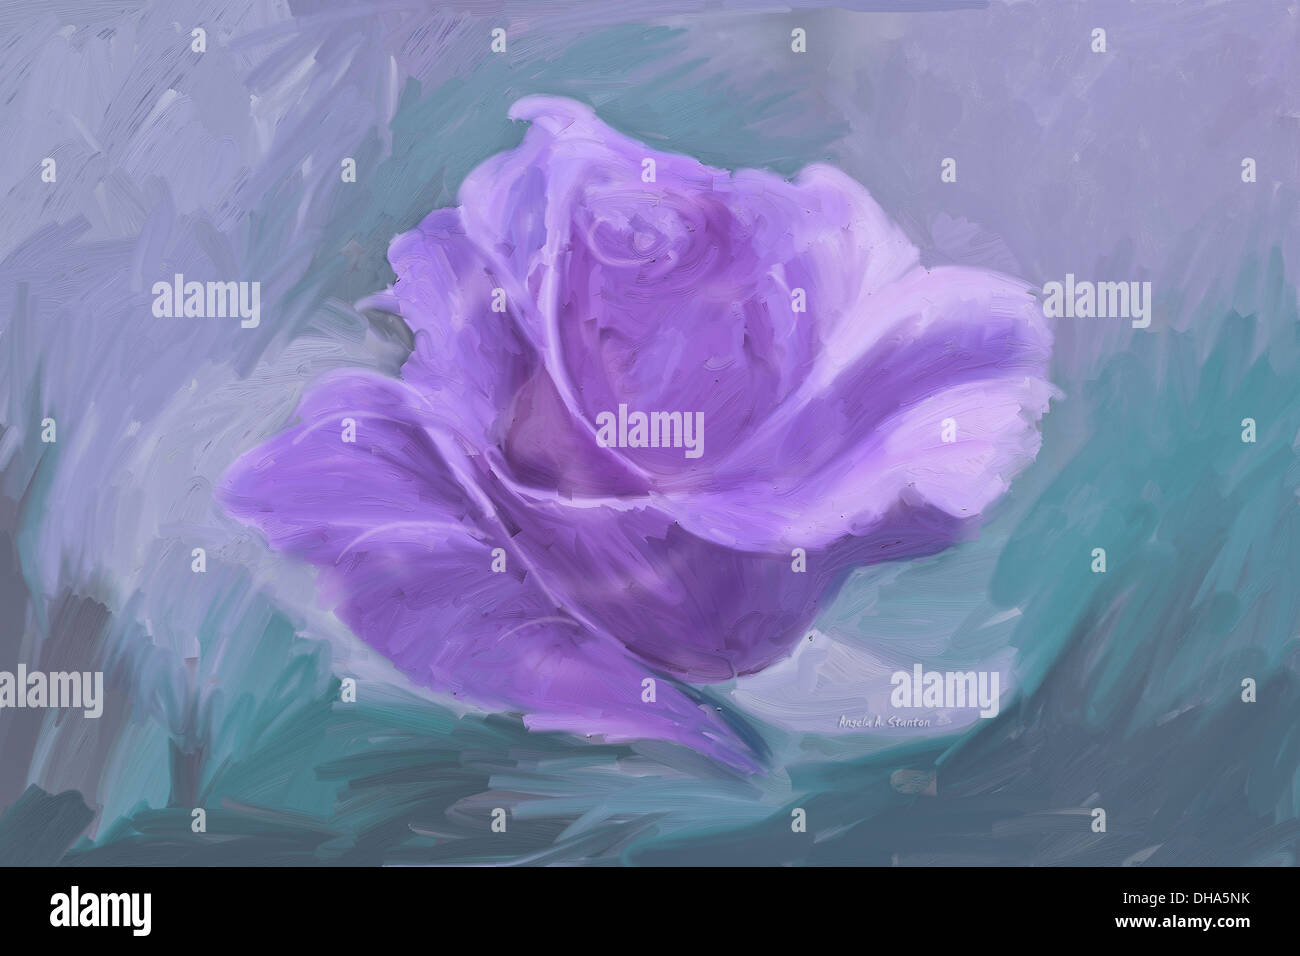 Computer Generated Image Of A Purple Flower - Stock Image